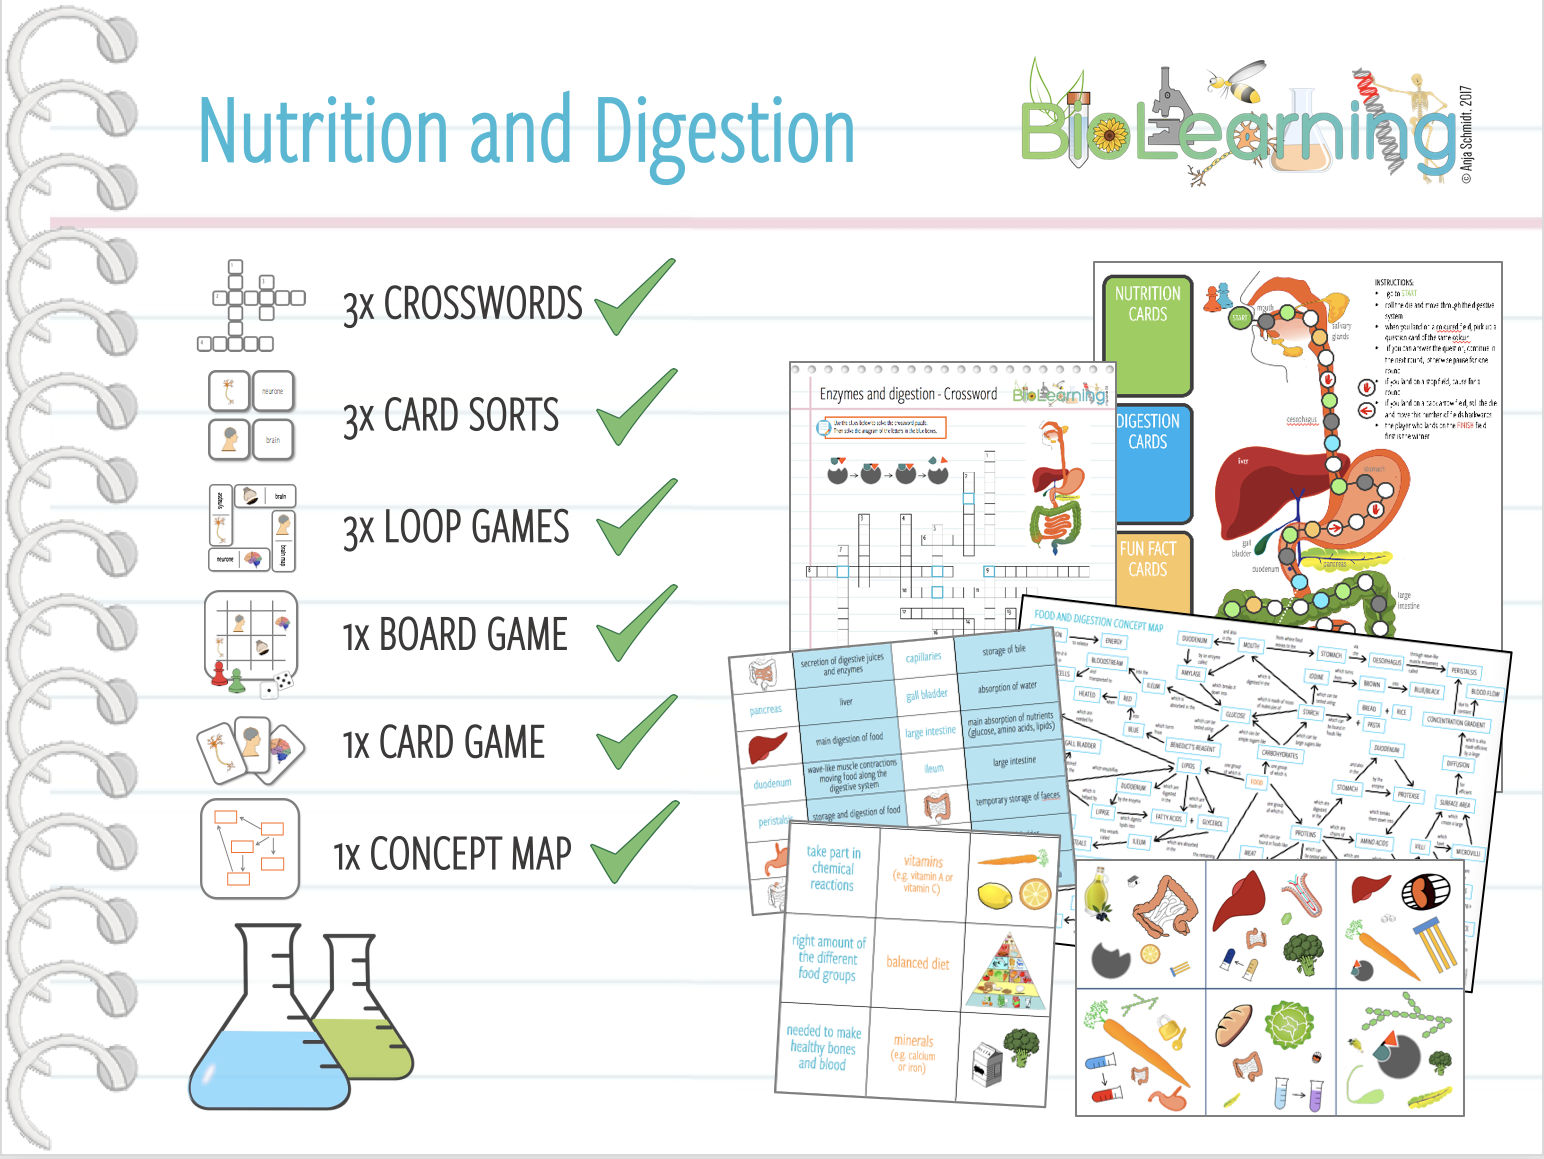 Nutrition and Digestion - 12x Activities Bundle